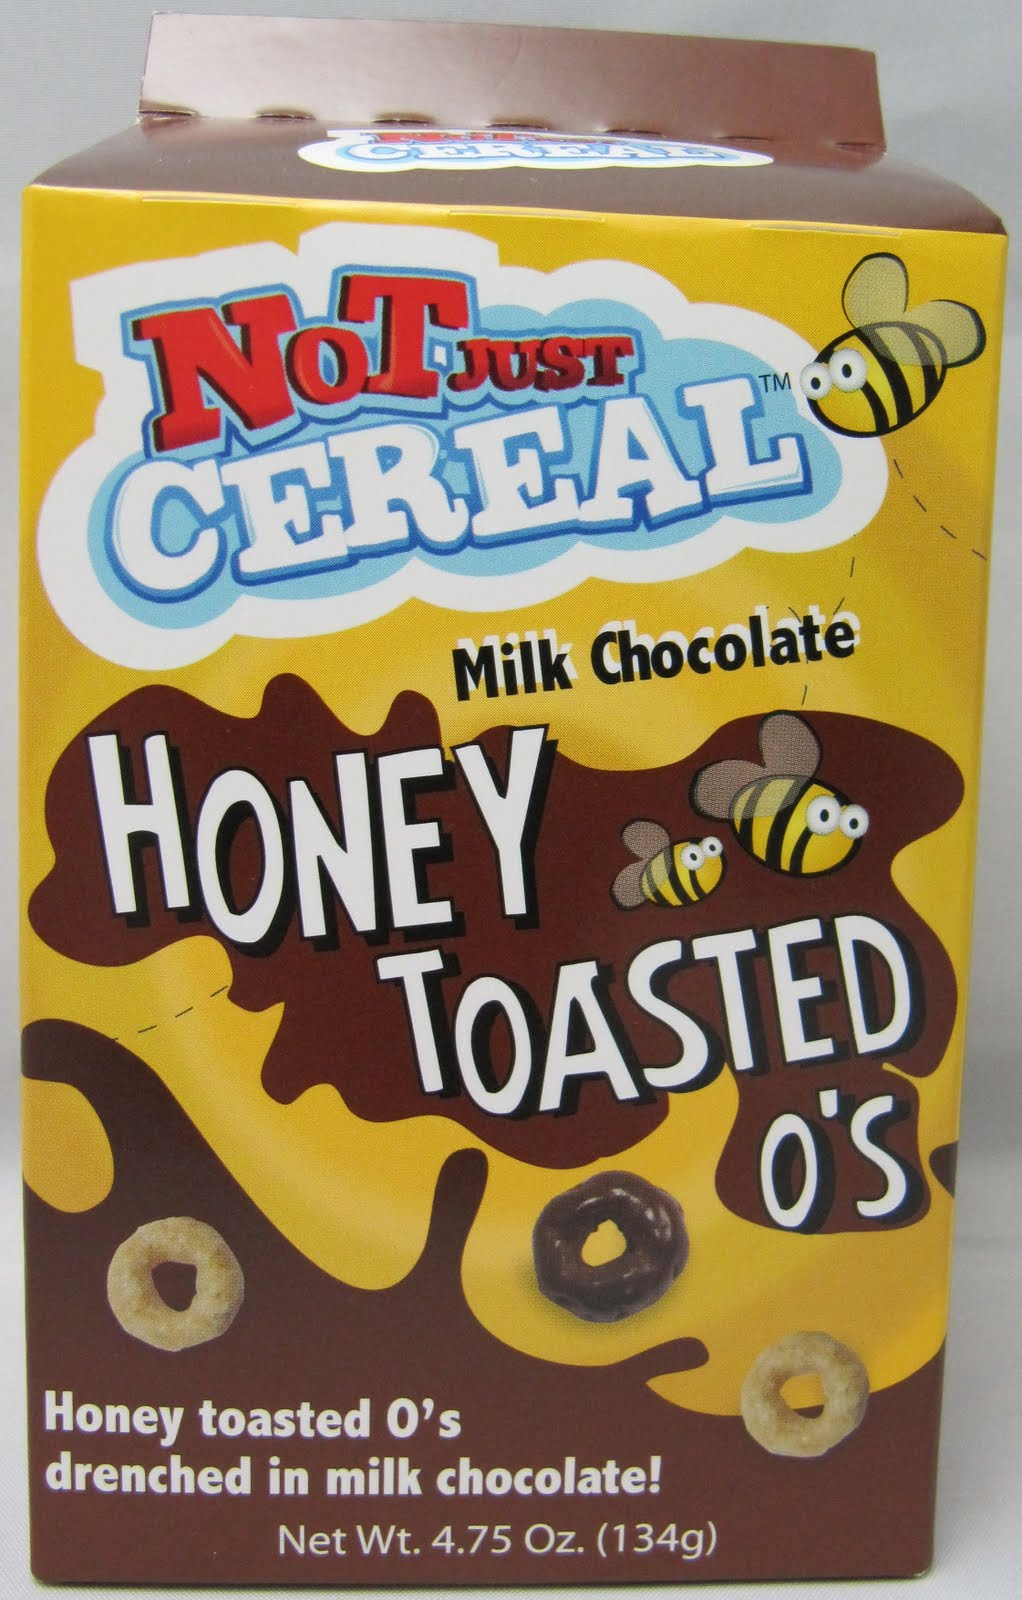 Motivation by chocolate chocolate doesnt always make it better ewwww these taste completely stale completely stale cereal coated in chocolate gross ccuart Images